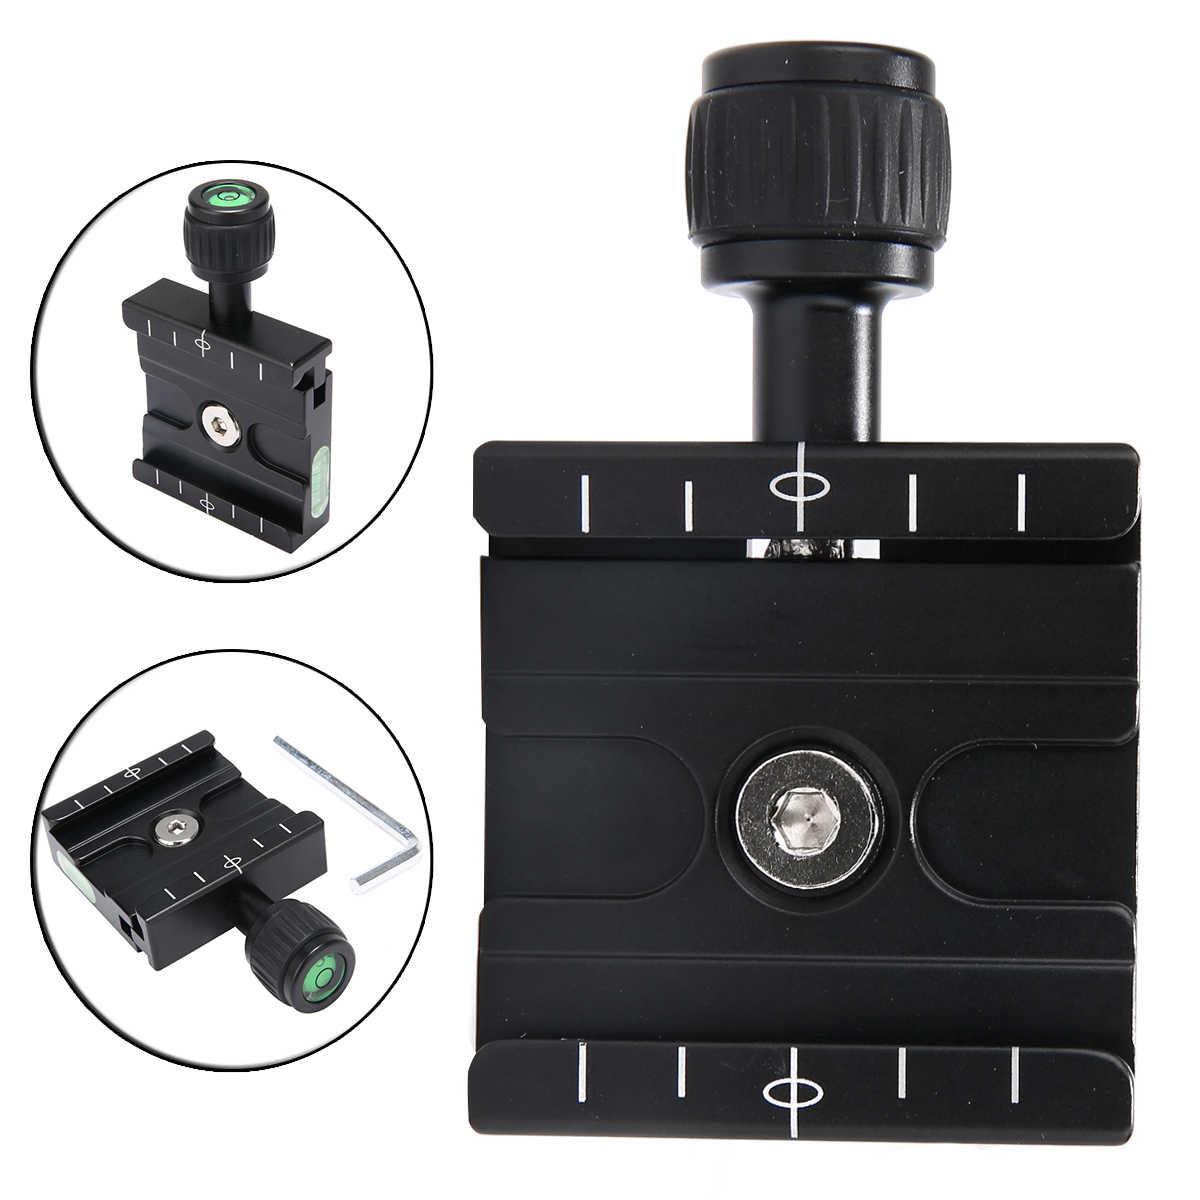 QR-50 Clamp Quick Release Plate For Arca SWISS Manfrotto Gitzo Tripod Ball Head Camera Quick Release Plate Accessories